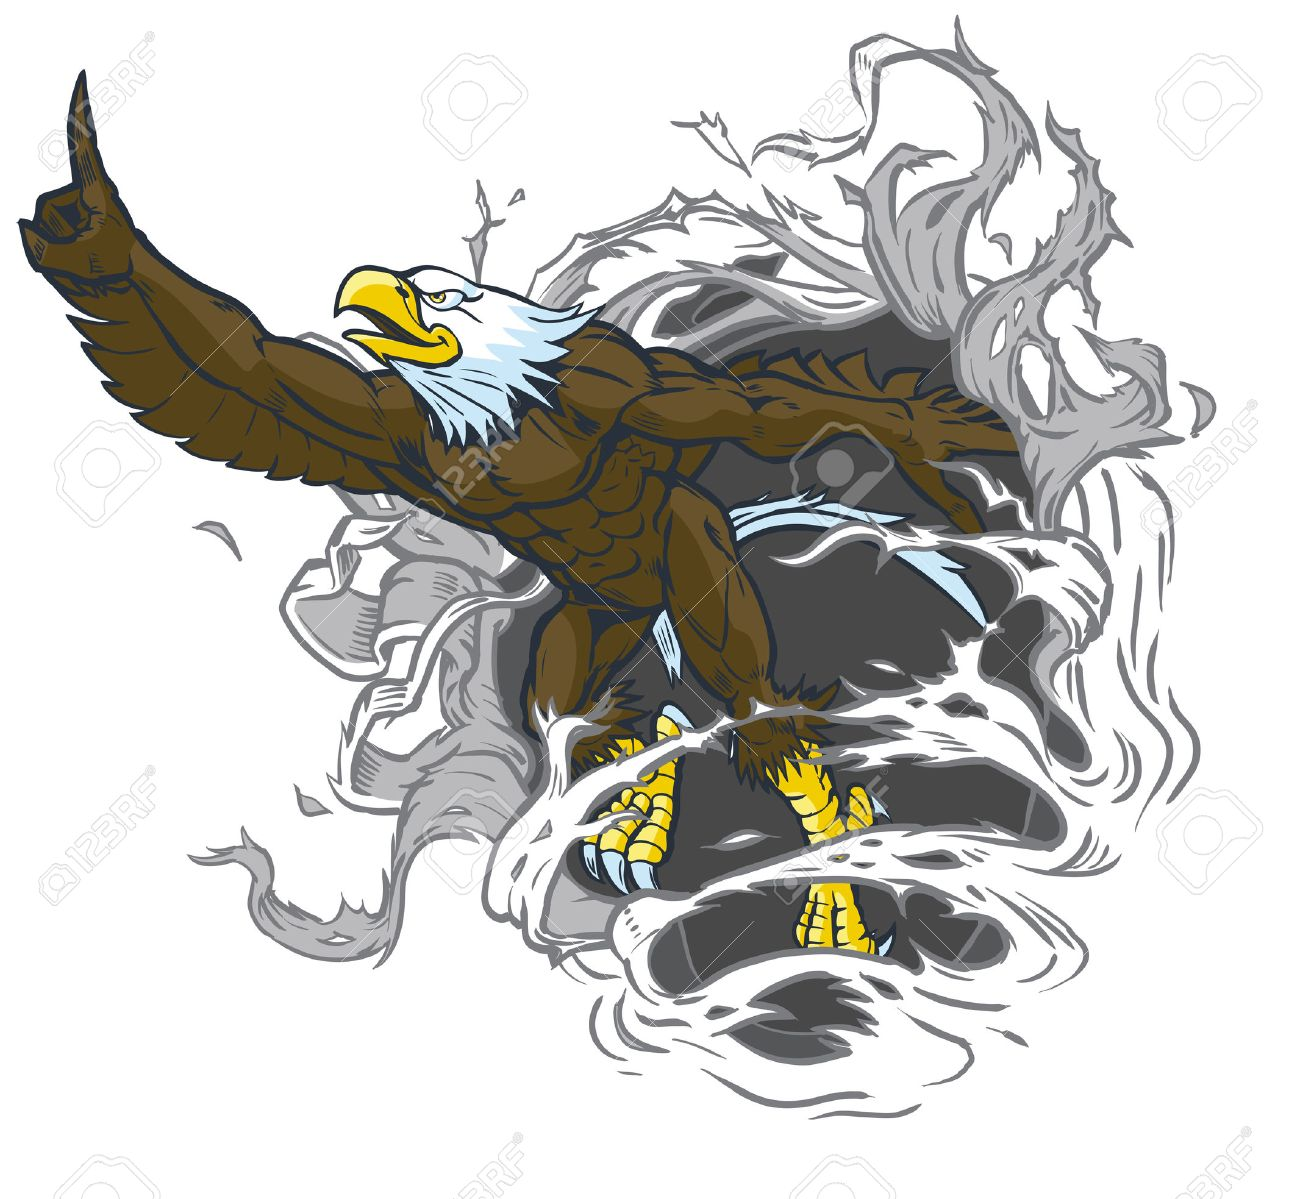 hight resolution of vector cartoon clip art illustration of a tough muscular bald eagle mascot ripping out of the background while throwing the number one hand gesture